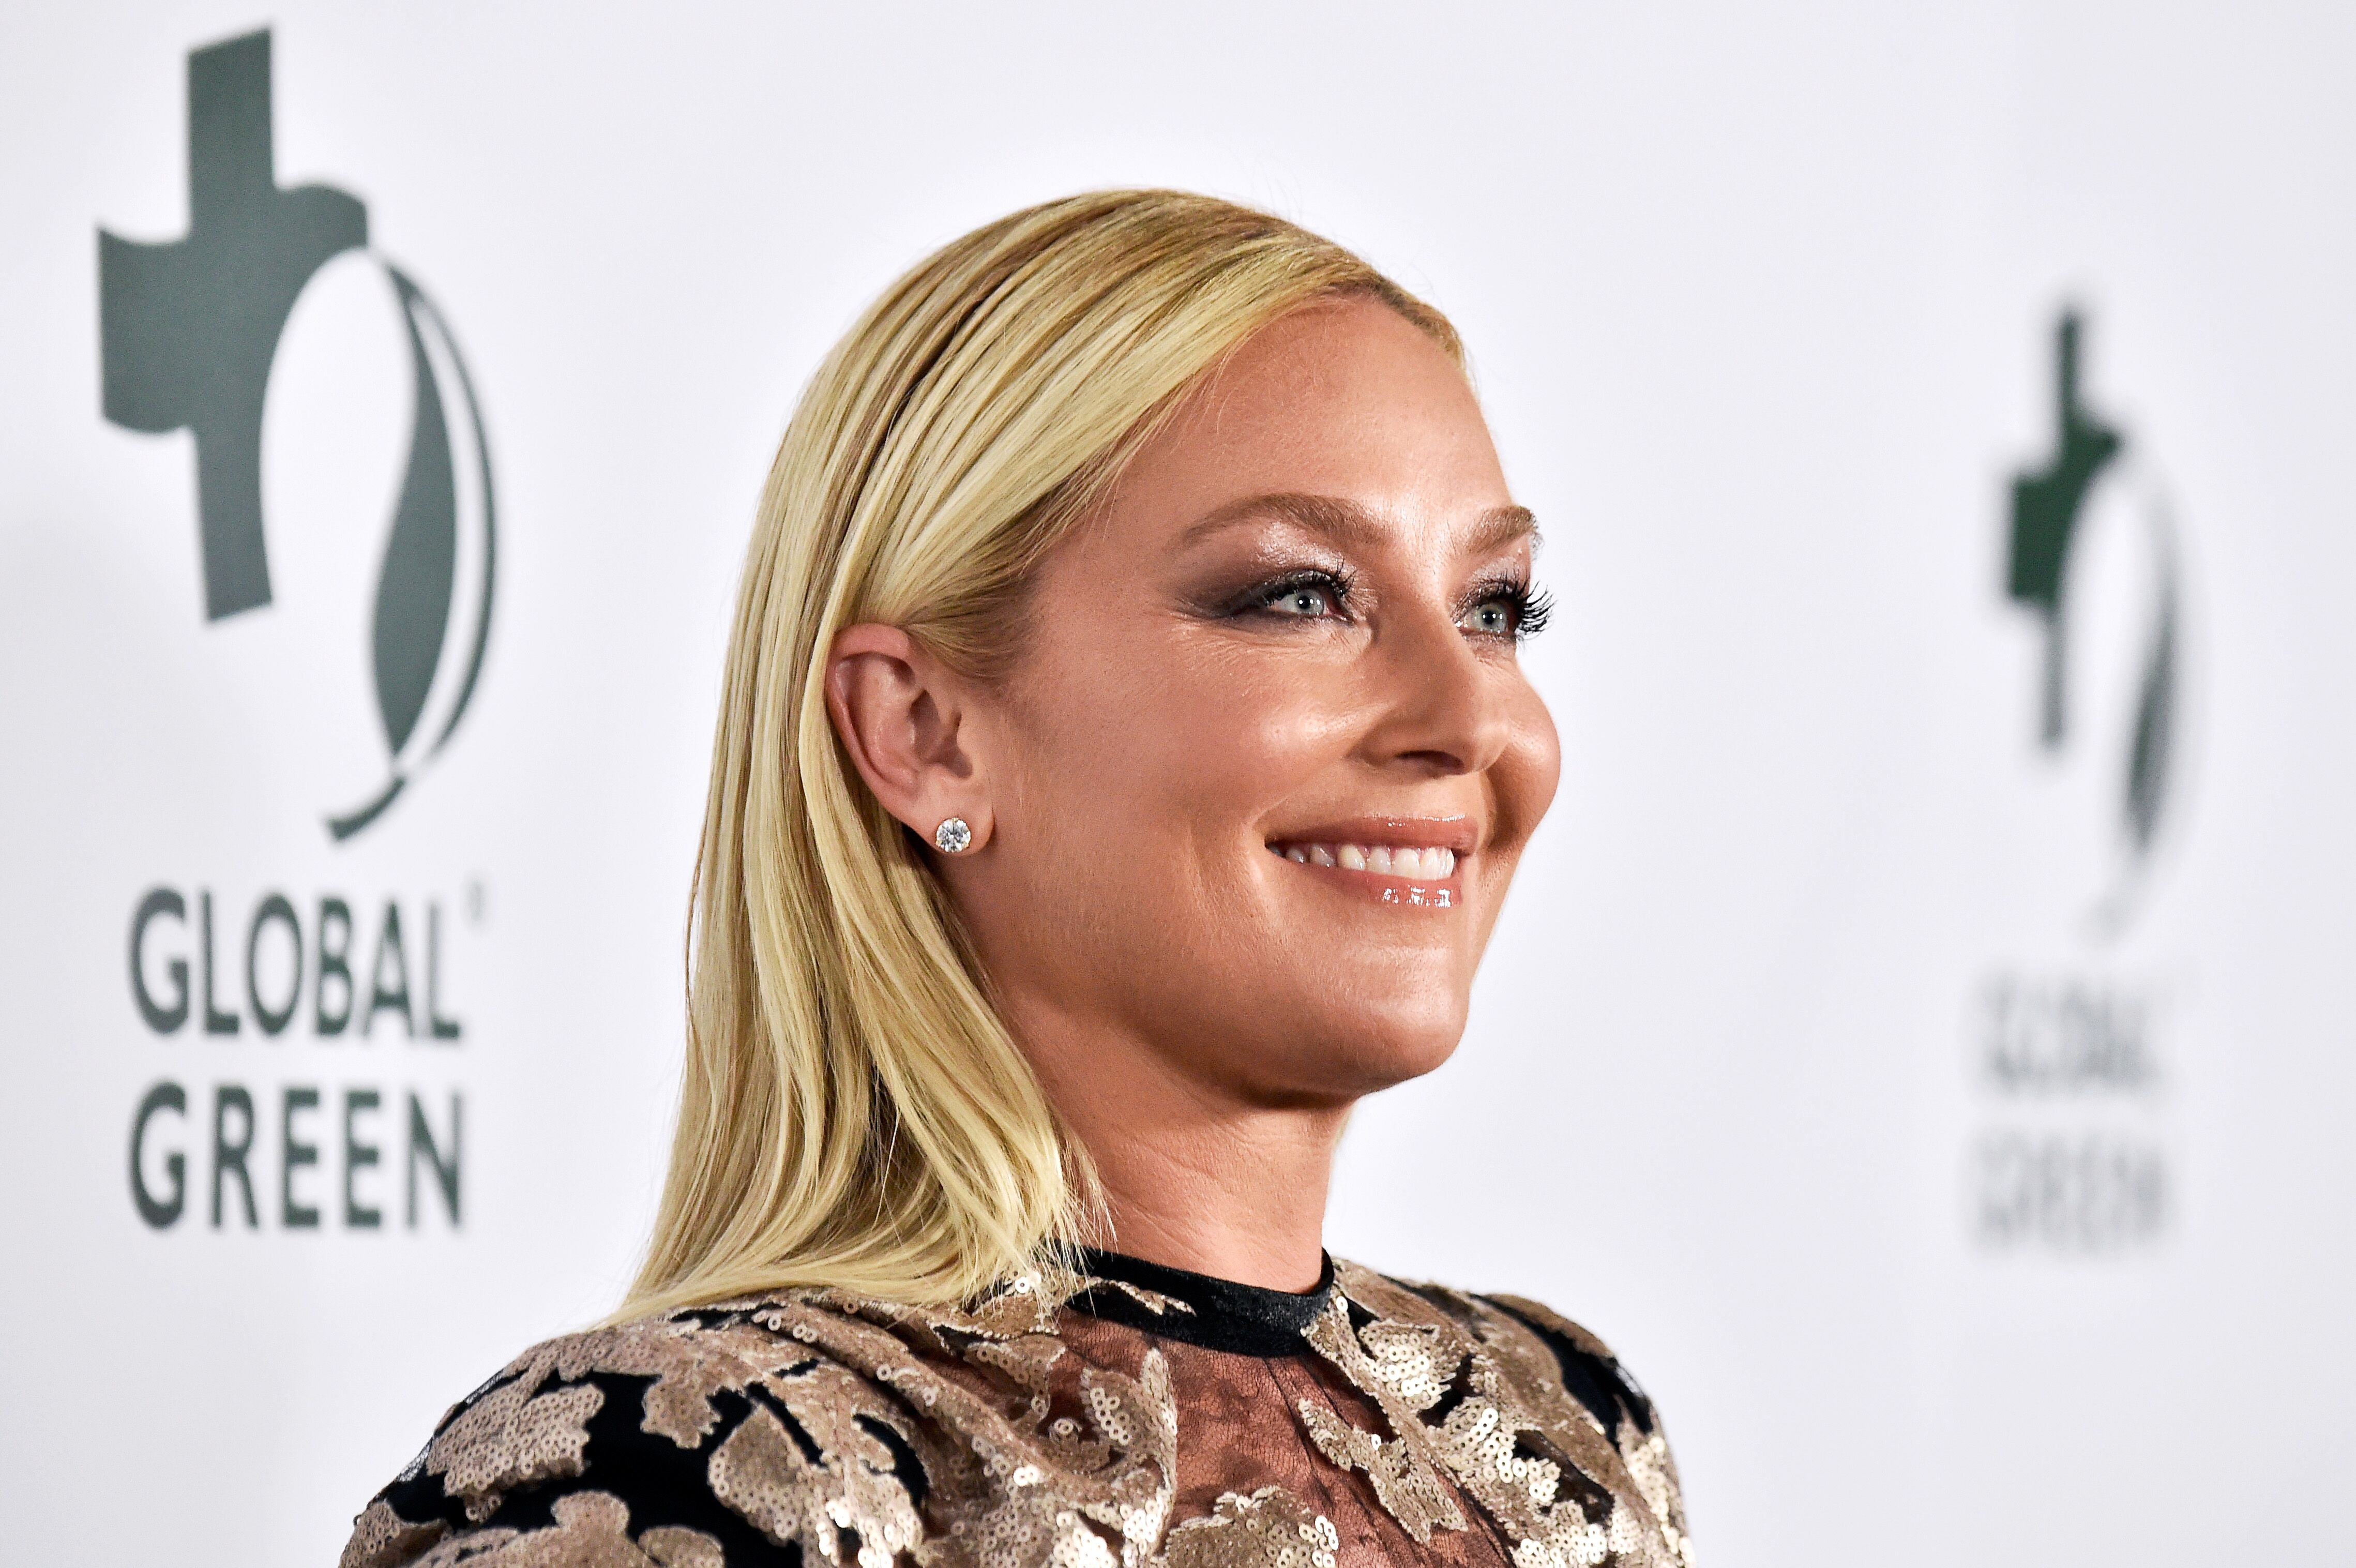 Elisabeth Rohm attends the 15th Annual Global Green Pre-Oscar Gala.   Source: Getty Images